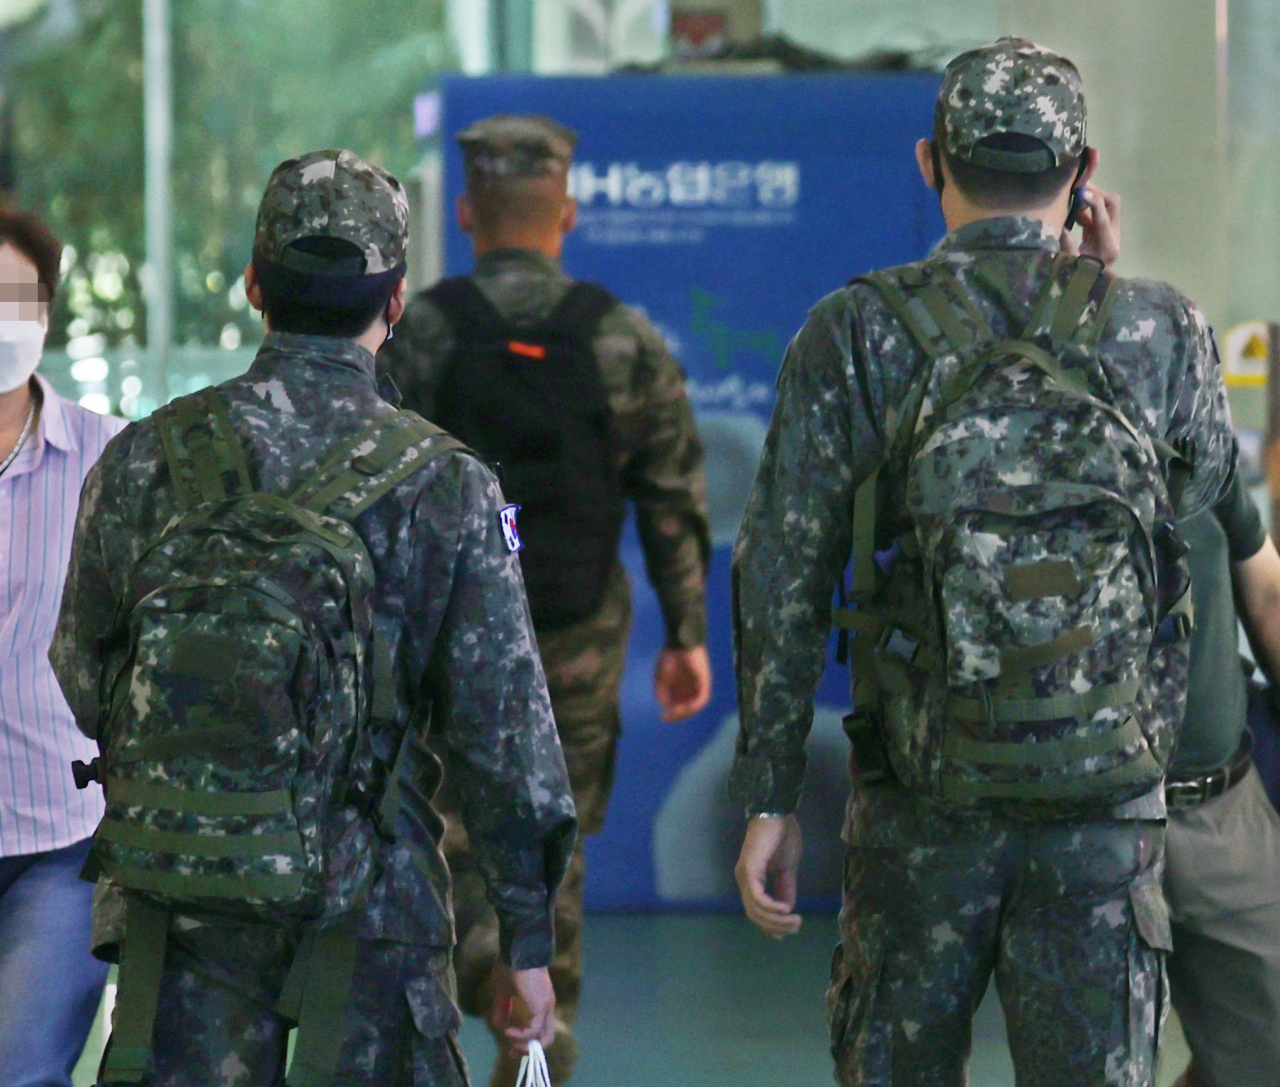 This file photo, taken last Sunday, shows service members at a bus terminal in Seoul. (Yonhap)